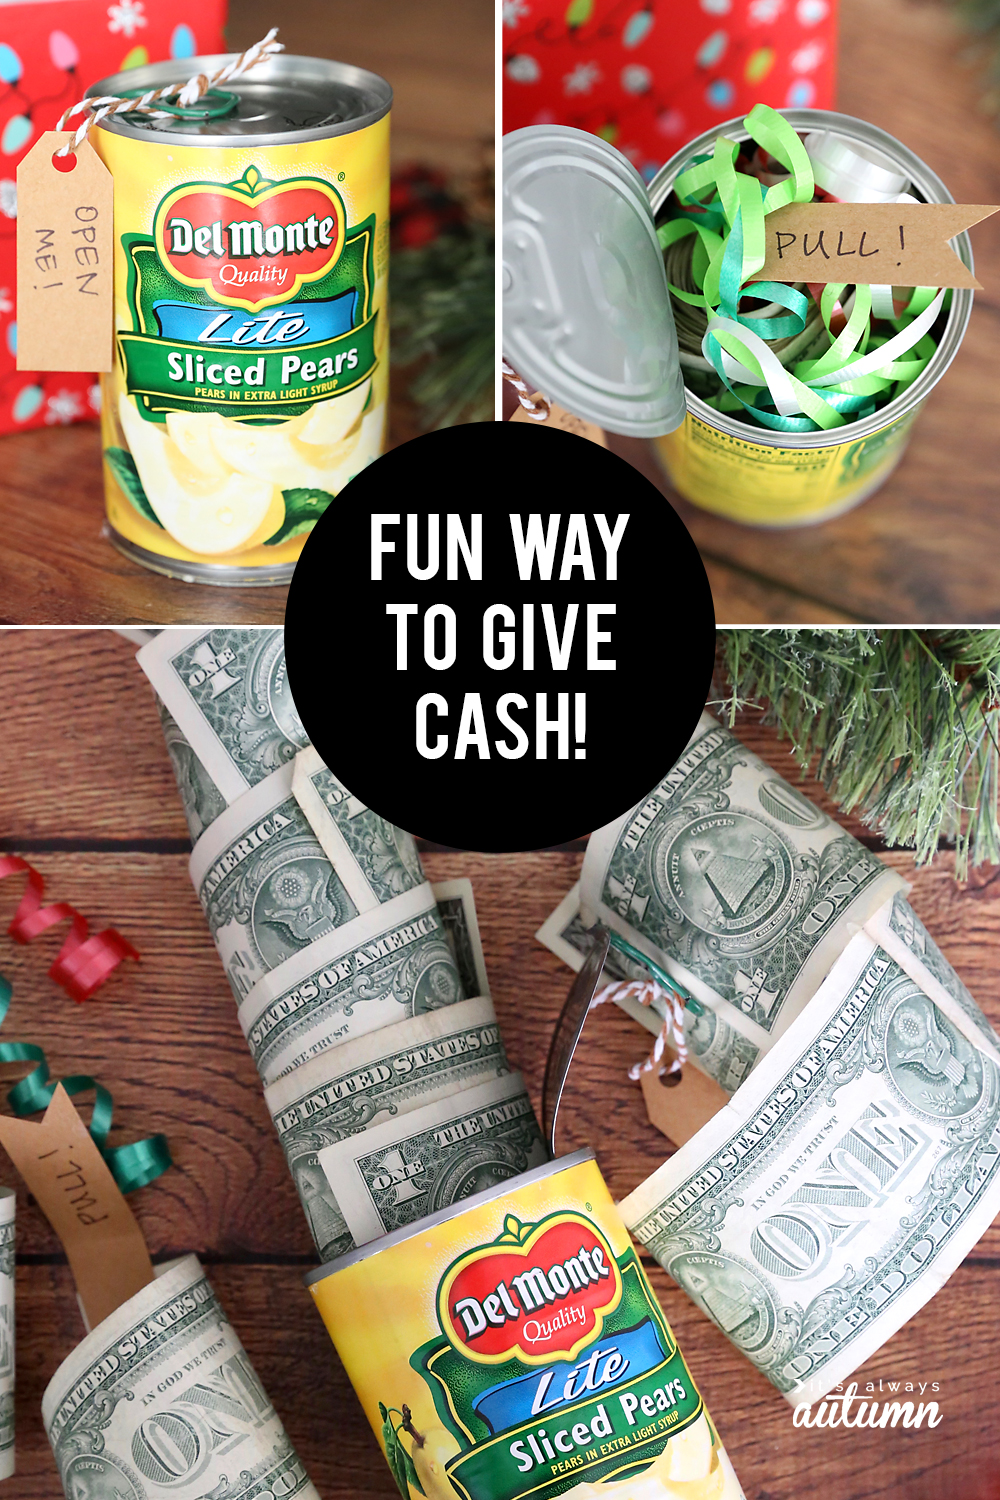 Roll of cash inside a can of peaches - fun way to give cash